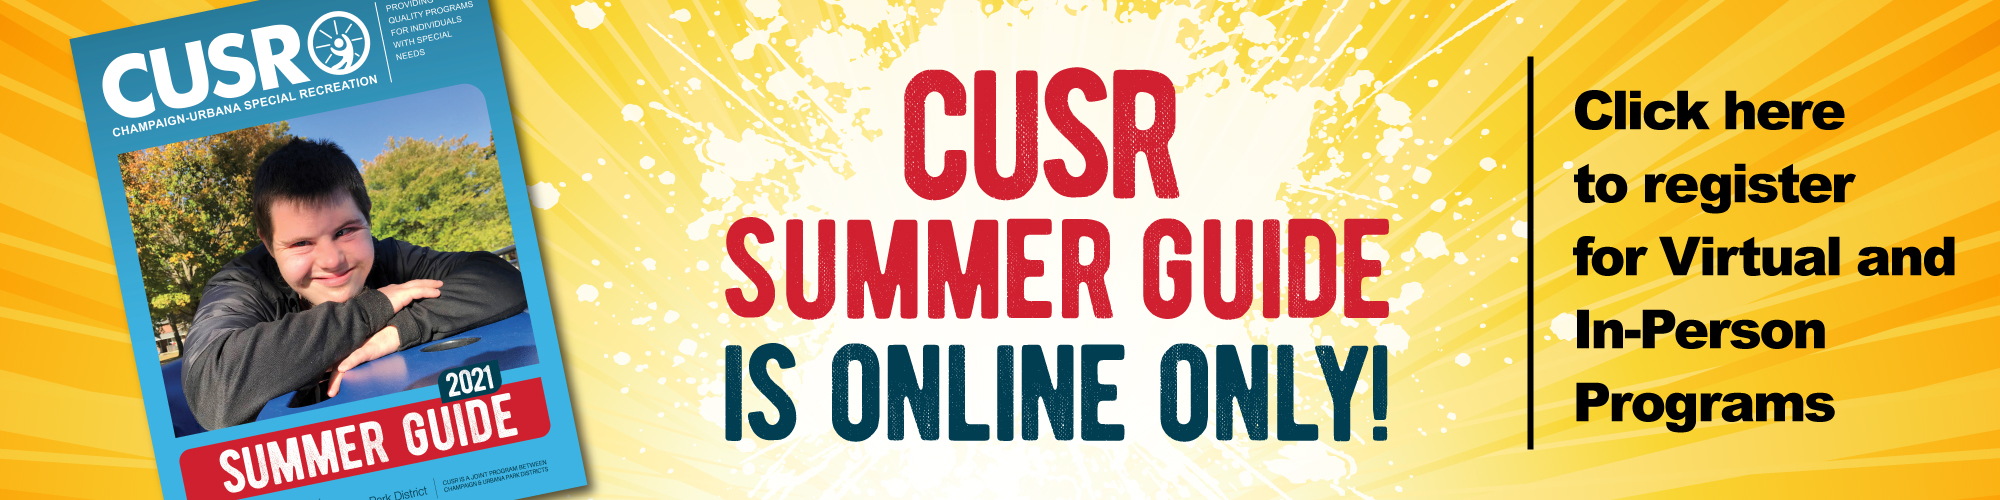 CUSR Summer Guide is Online ONLY! Click Here